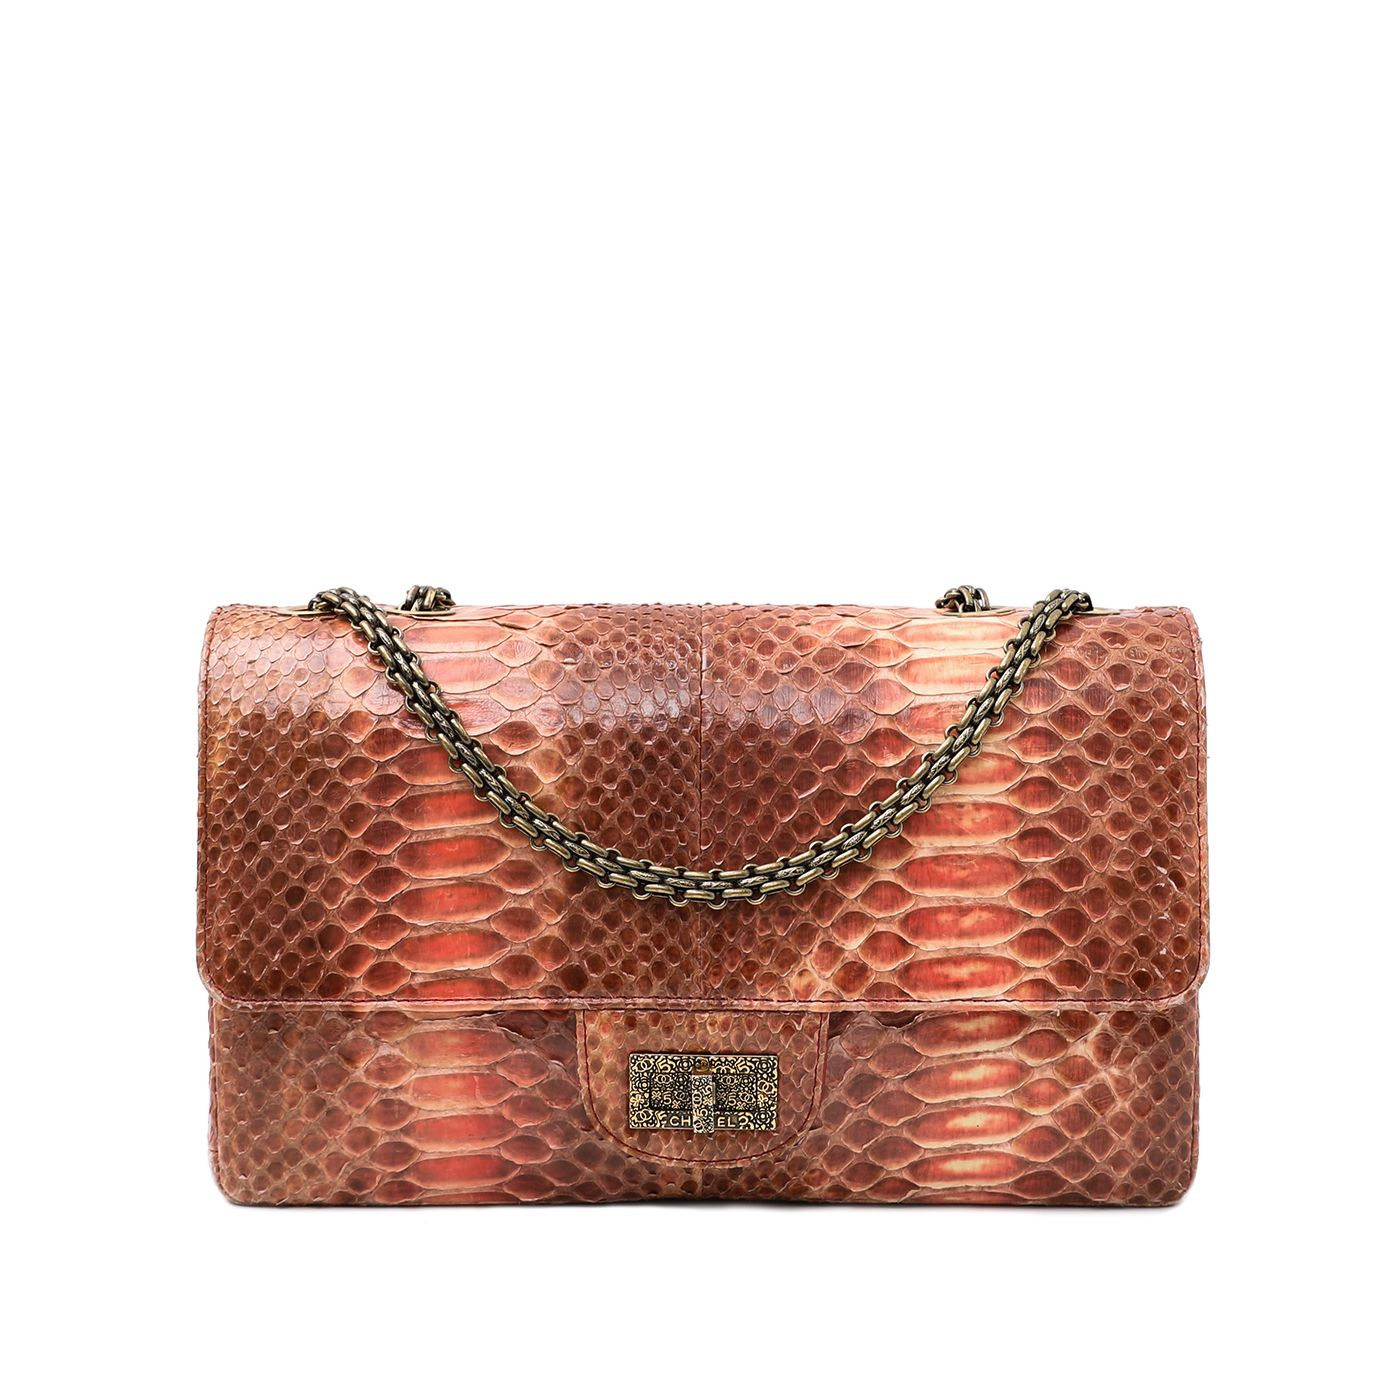 Chanel Pink Ombre Python 2.55 Reissue Bag